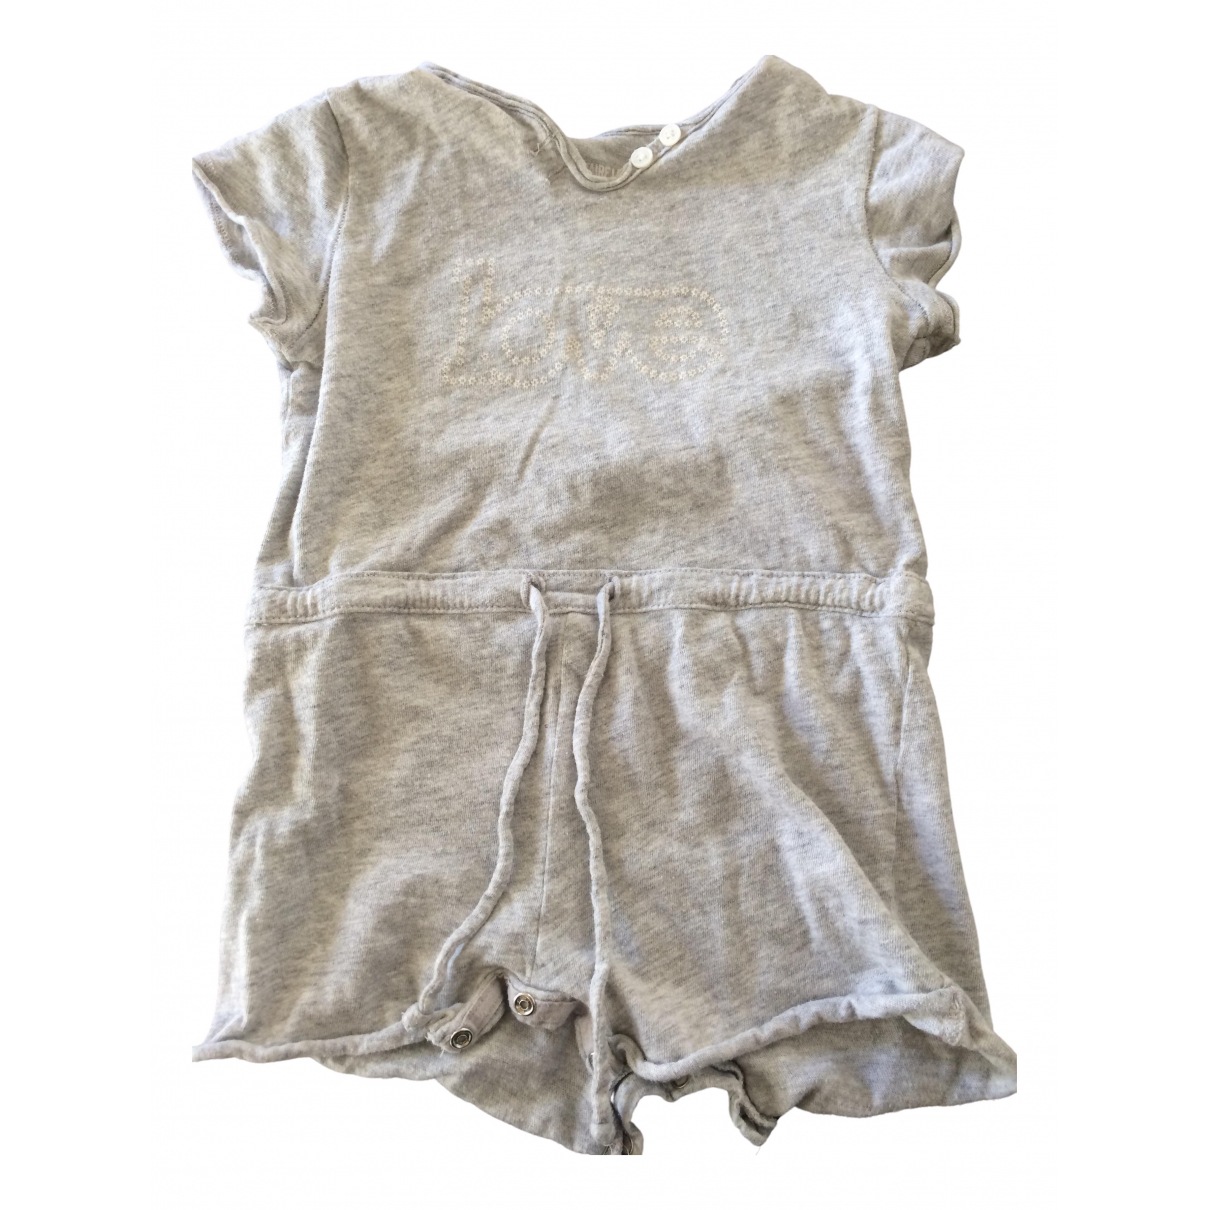 Zadig & Voltaire N Grey Cotton Outfits for Kids 12 months - up to 74cm FR